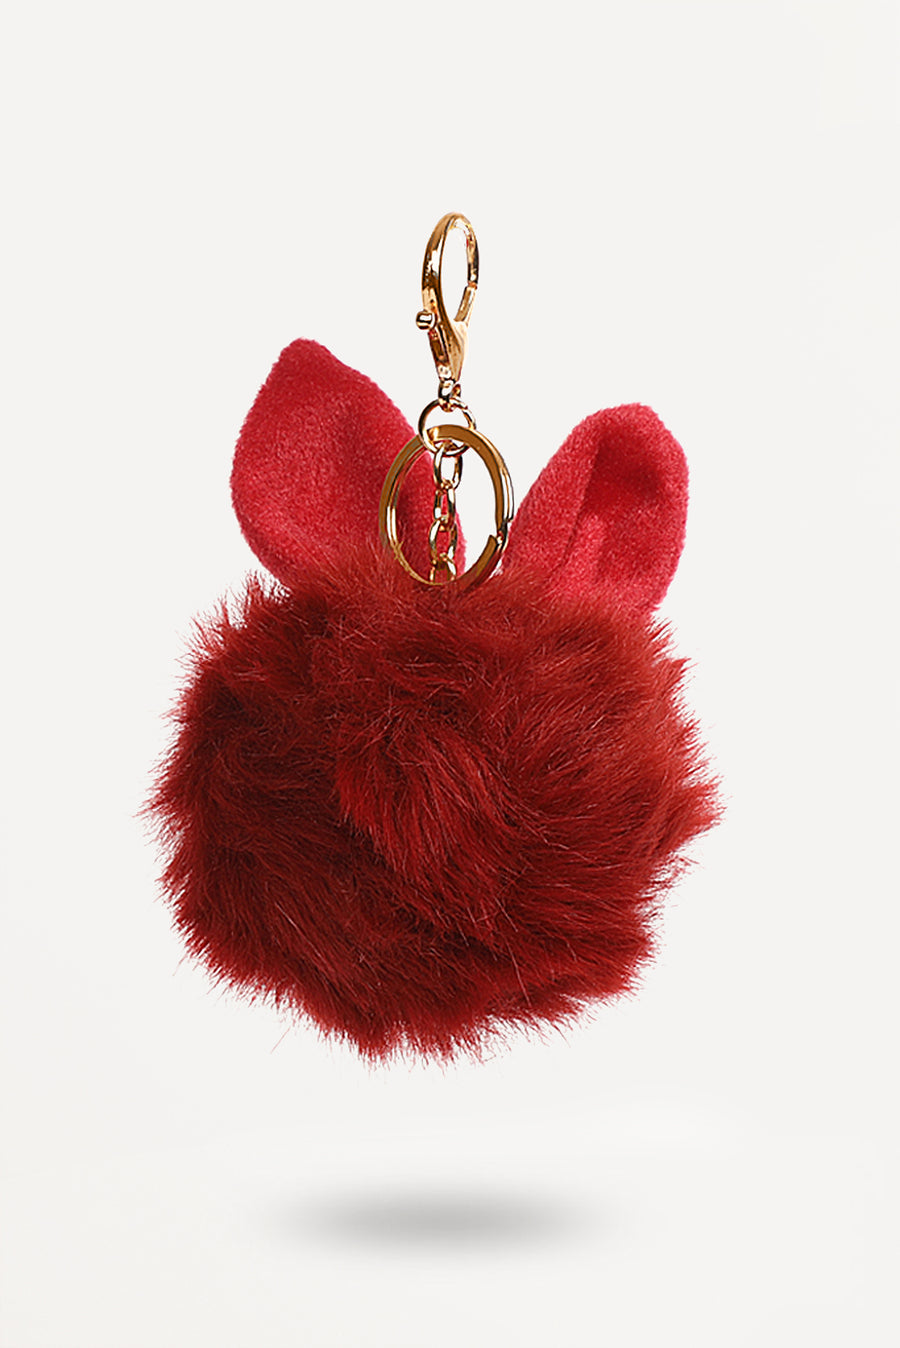 Red Bunny-Ear Fur Ball - nobby